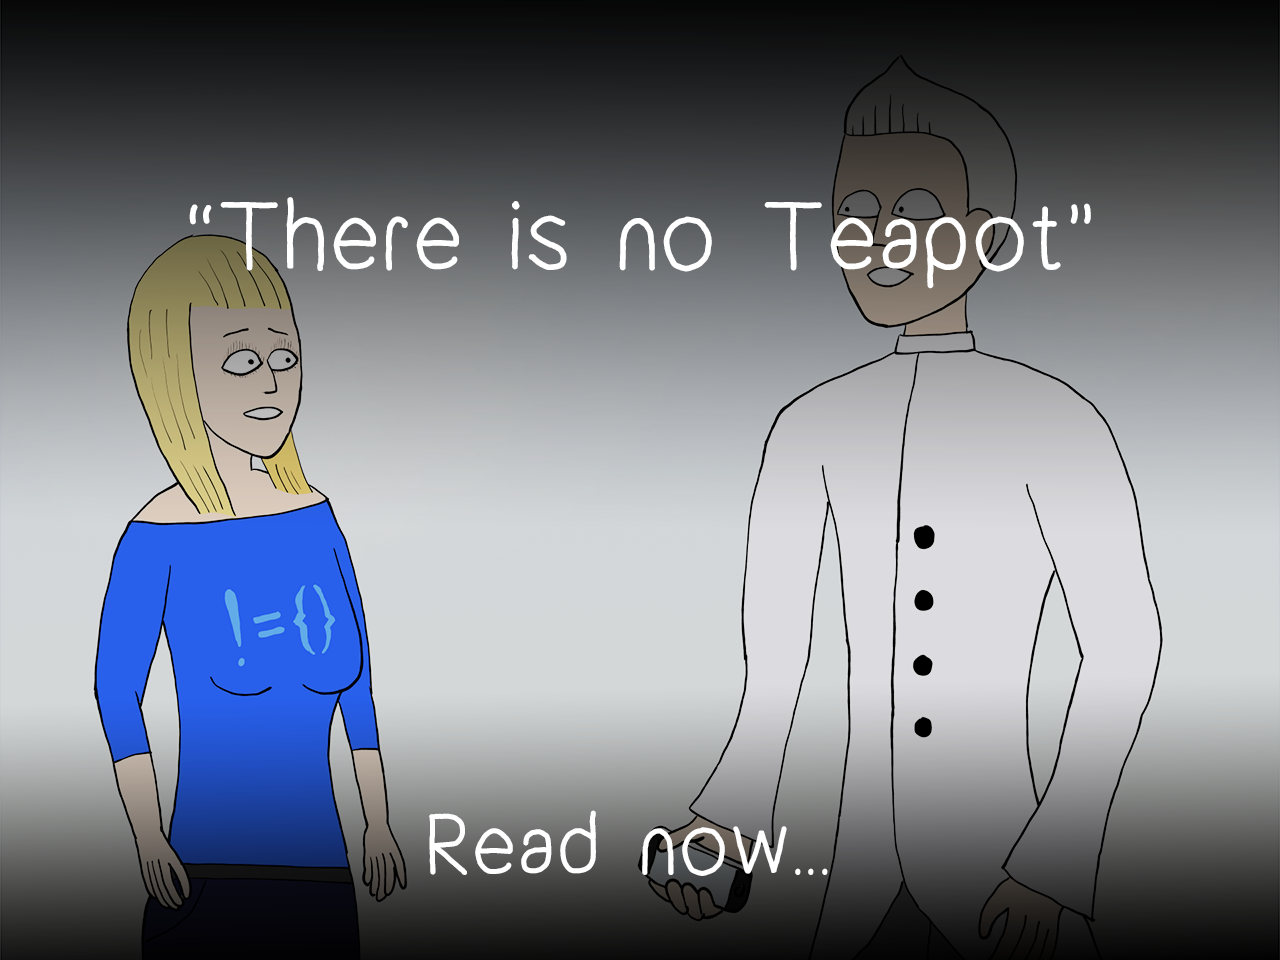 There is no Teapot